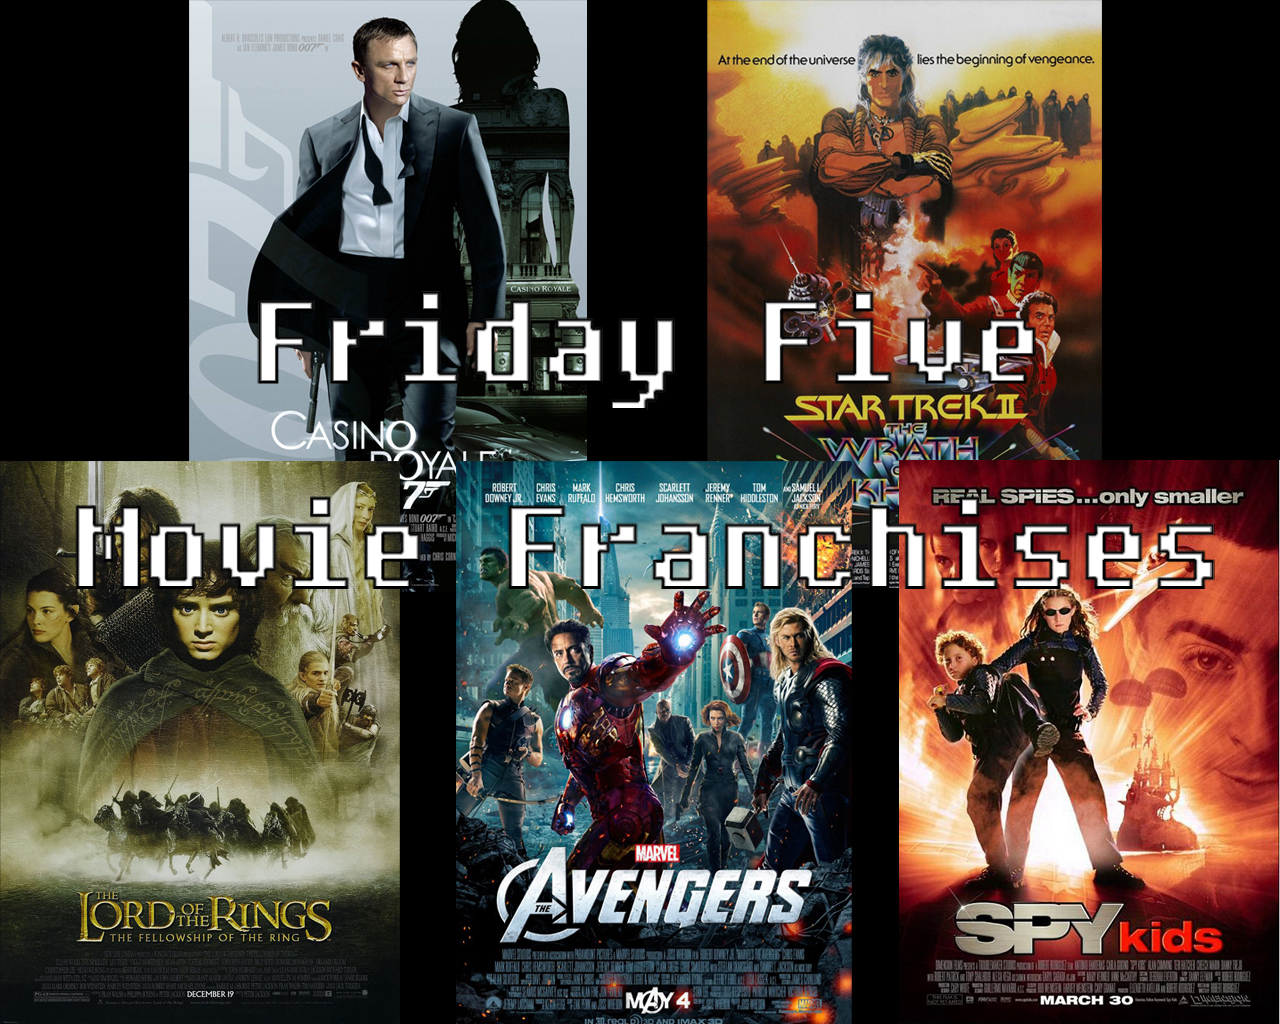 Casino Royale, Avengers, Wrath of Kahn, Lord of the RIngs, Spy Kids movie posters